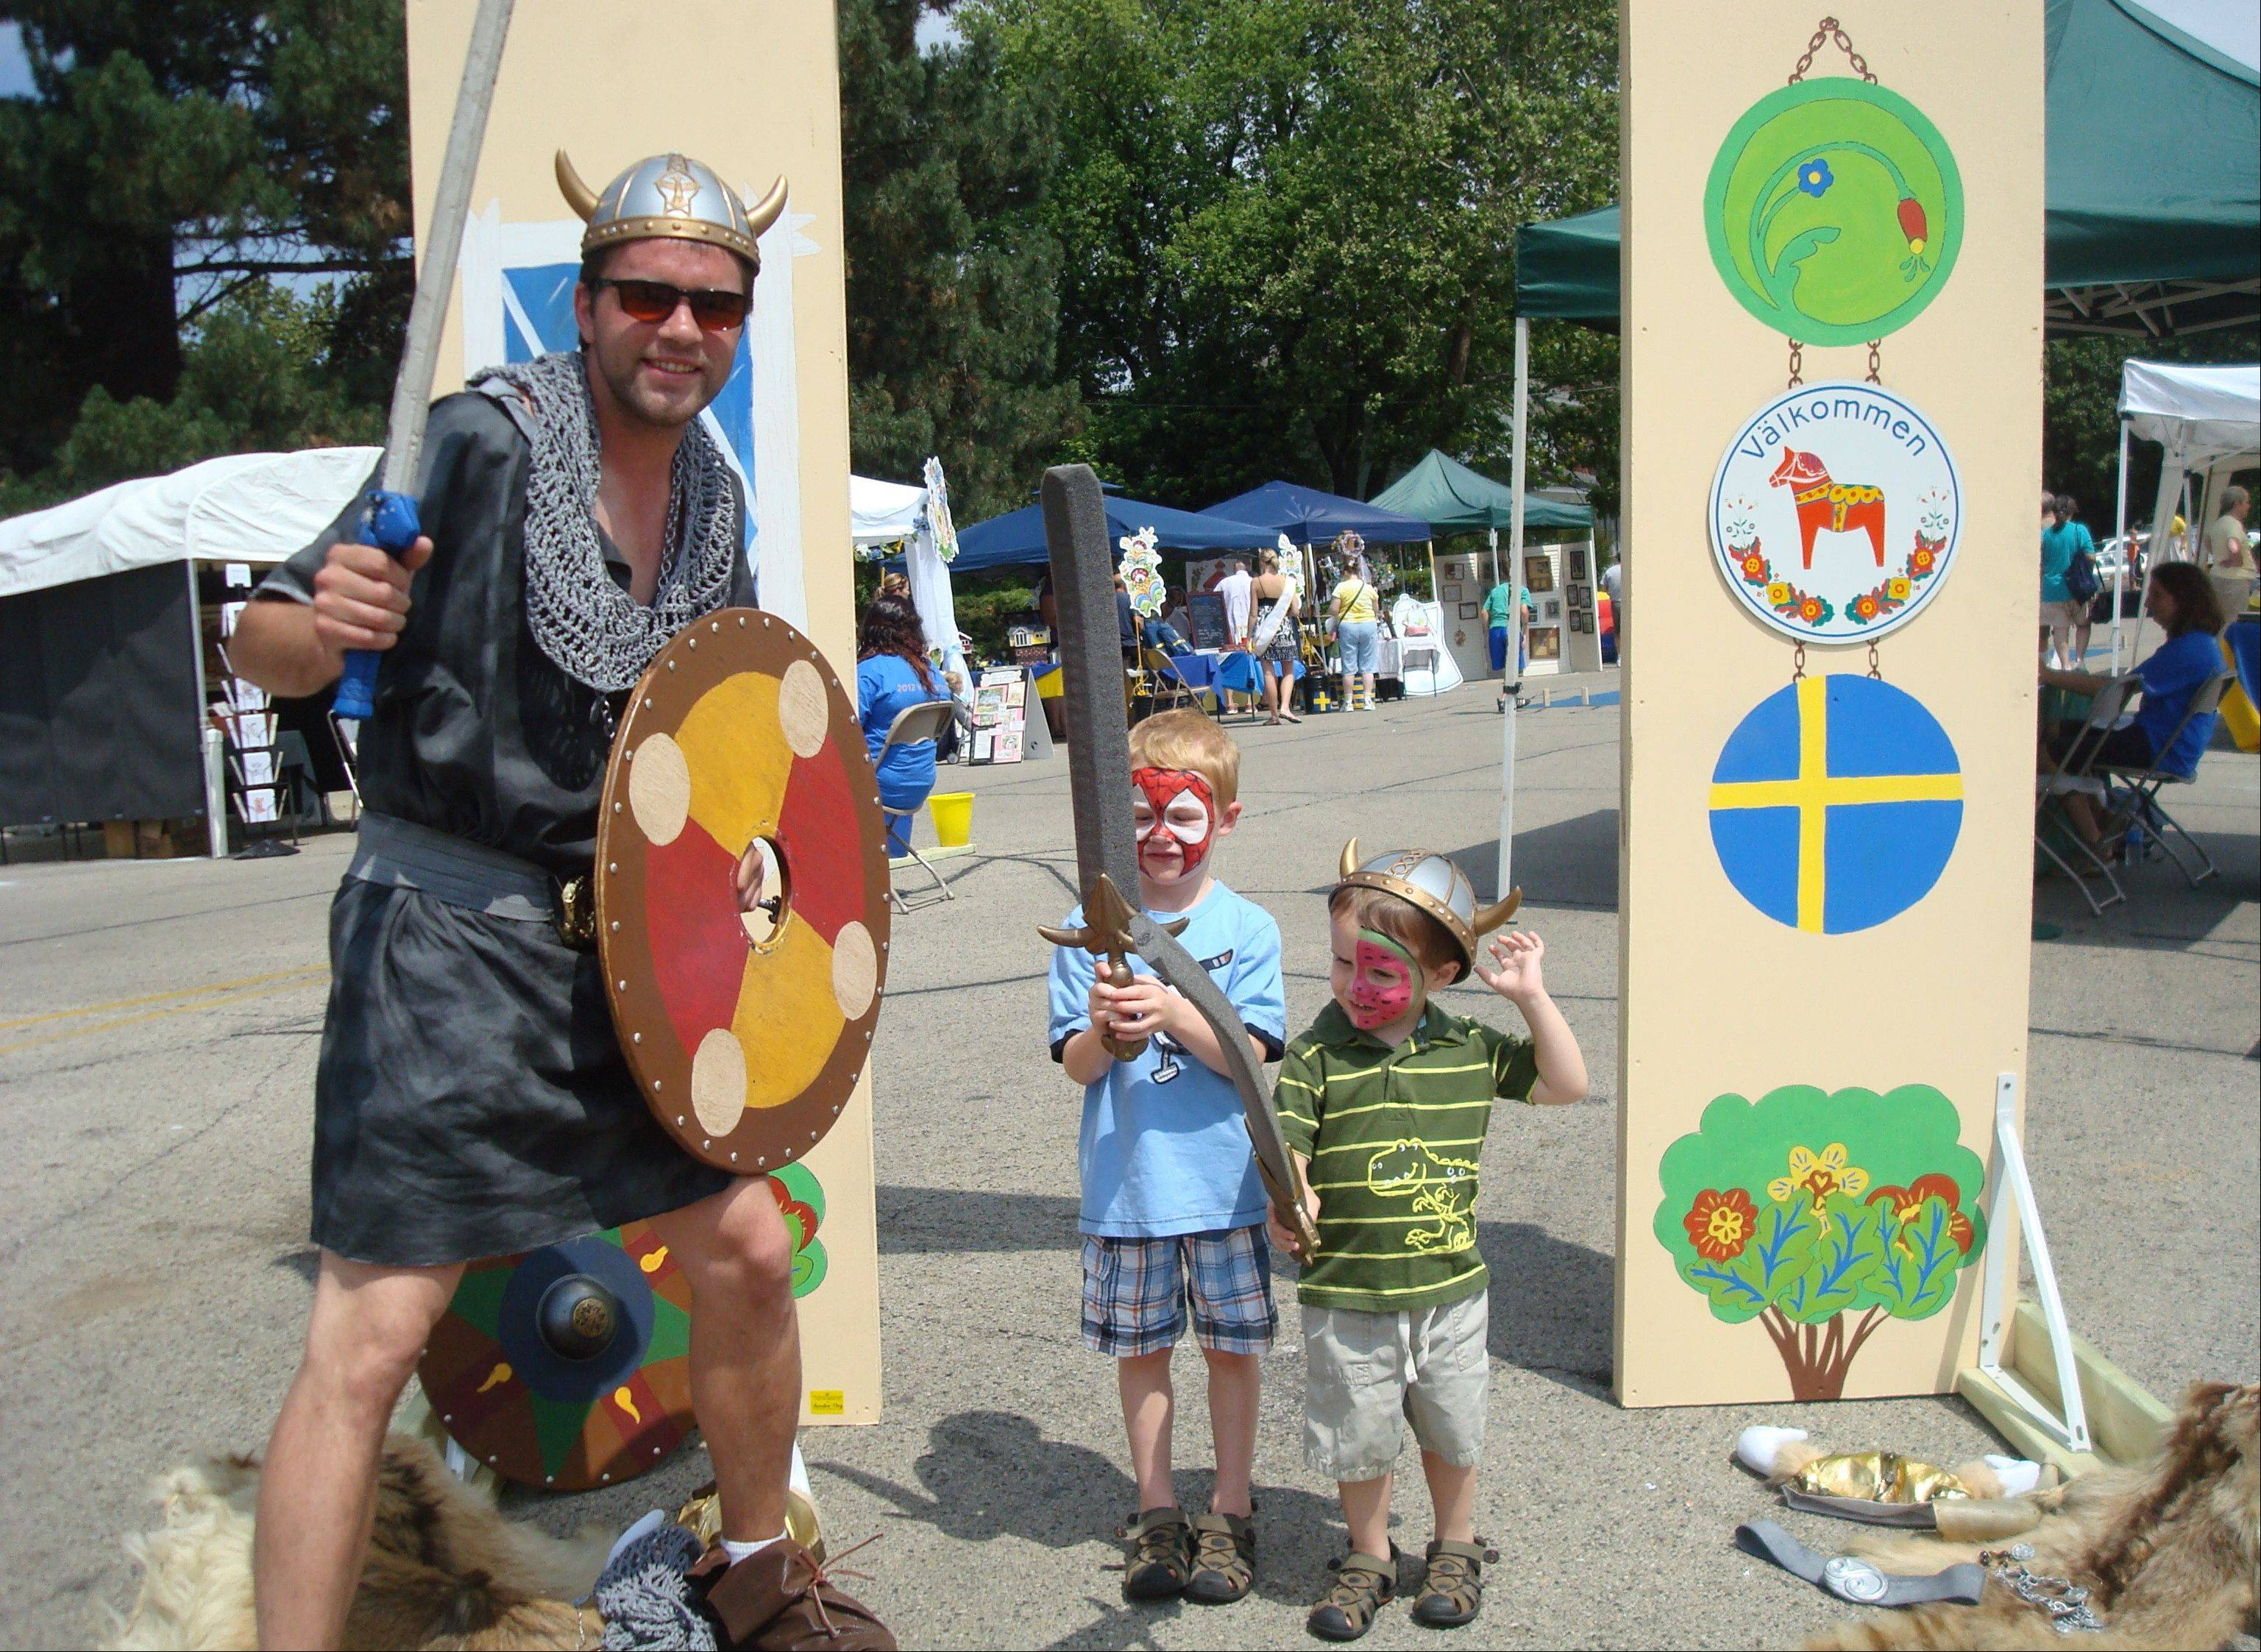 Explore Swedish culture at Sweden Vast on Saturday and Sunday, June 22-23.